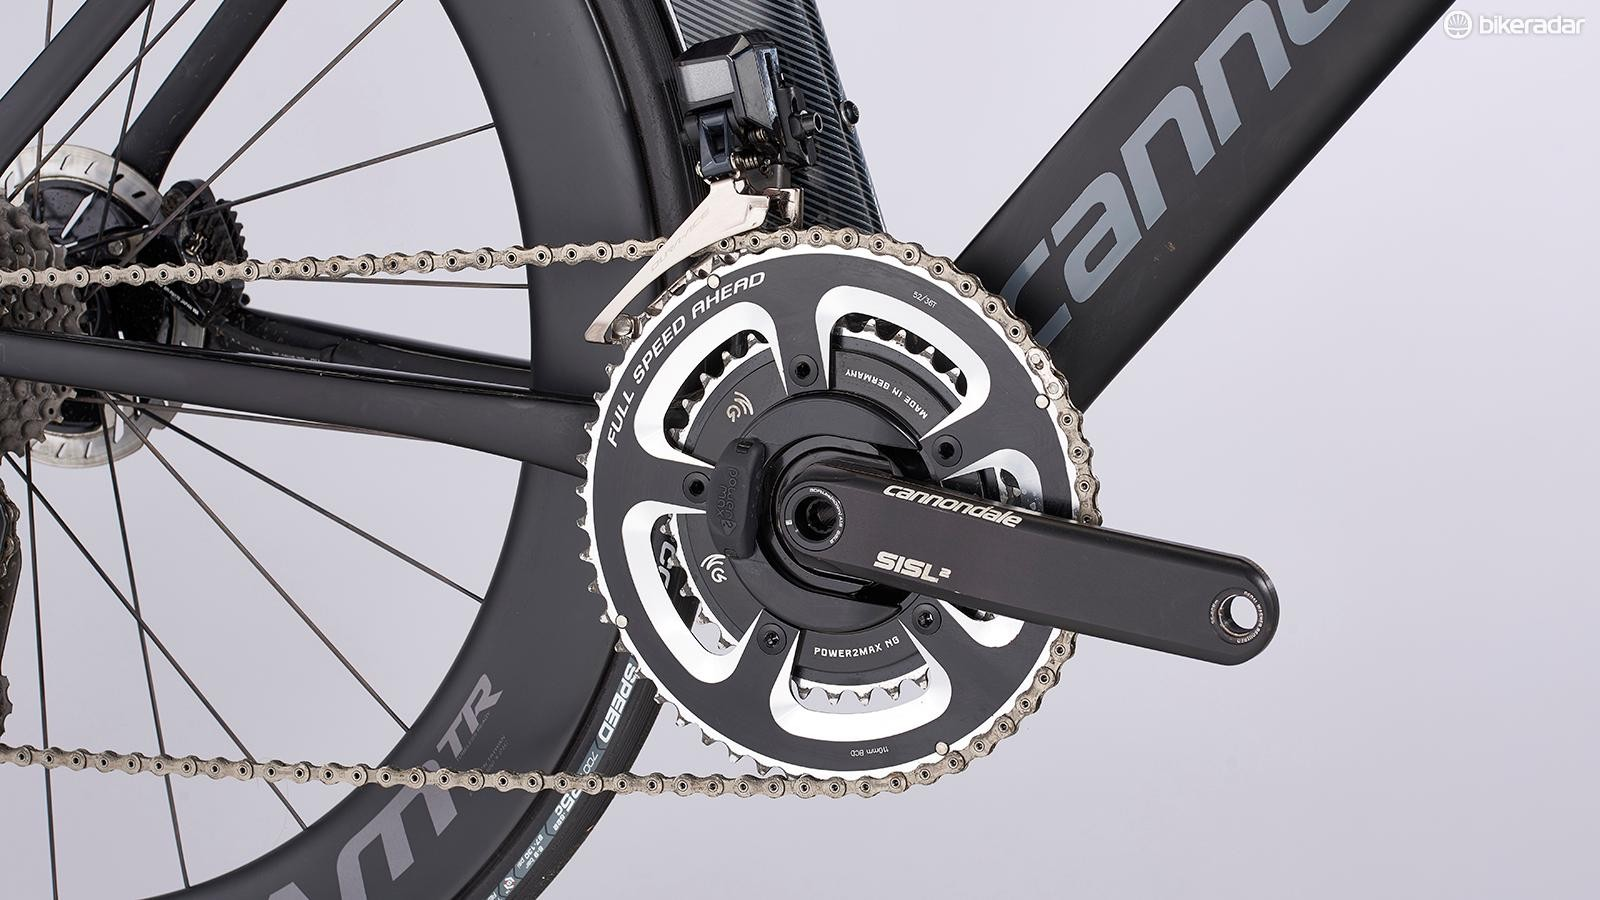 Shimano's flagship Dura-Ace Di2 group delivers the drivetrain and braking